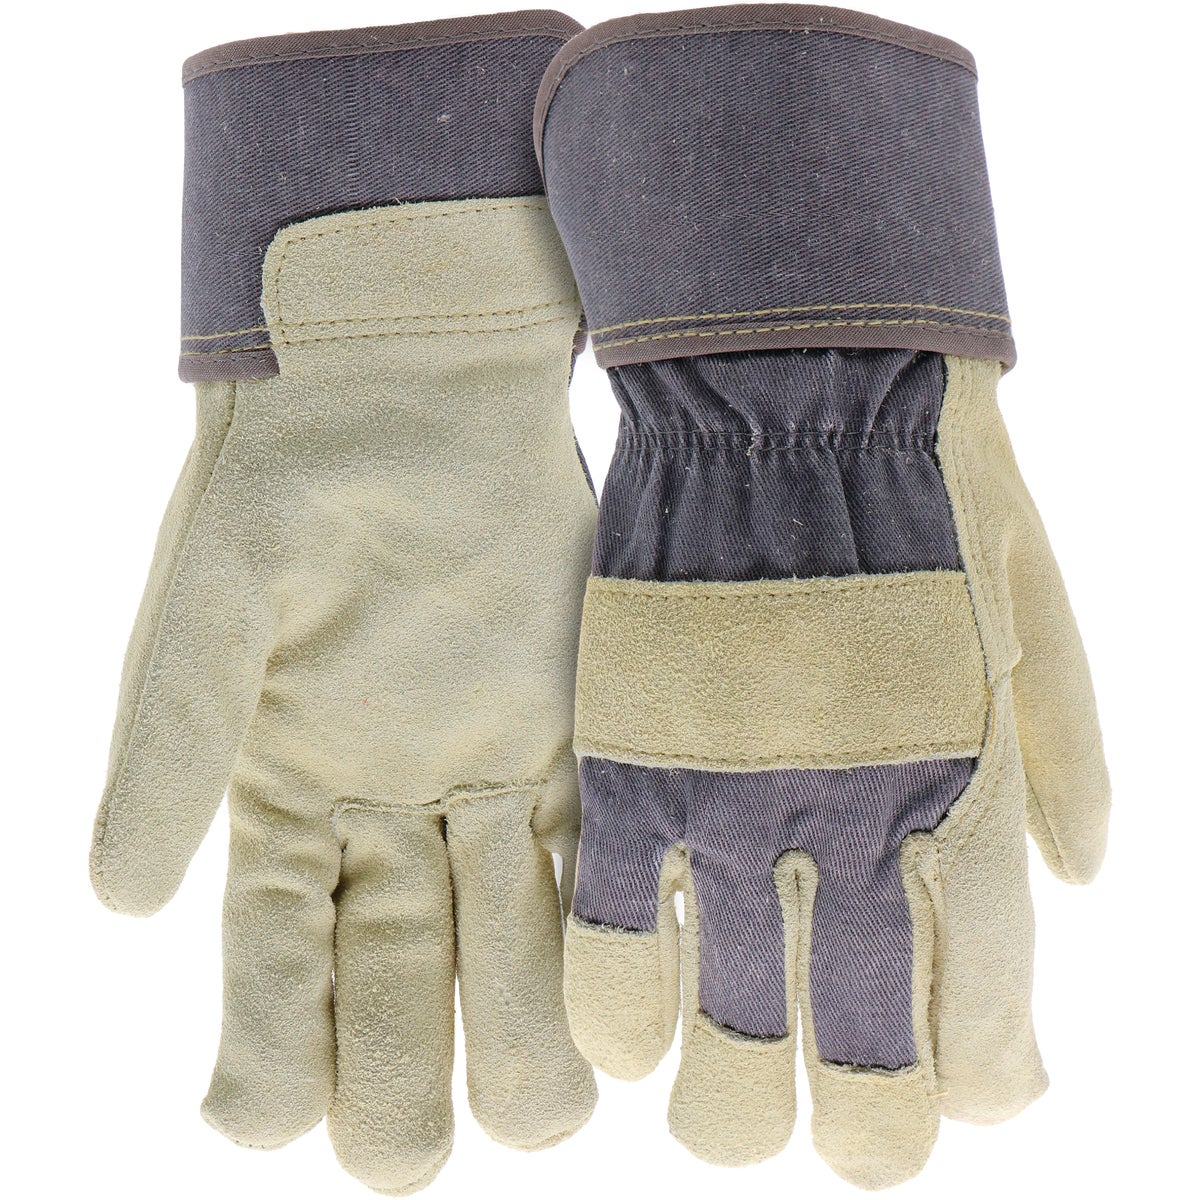 MED LADY LTHR PALM GLOVE - 4113M by Wells Lamont